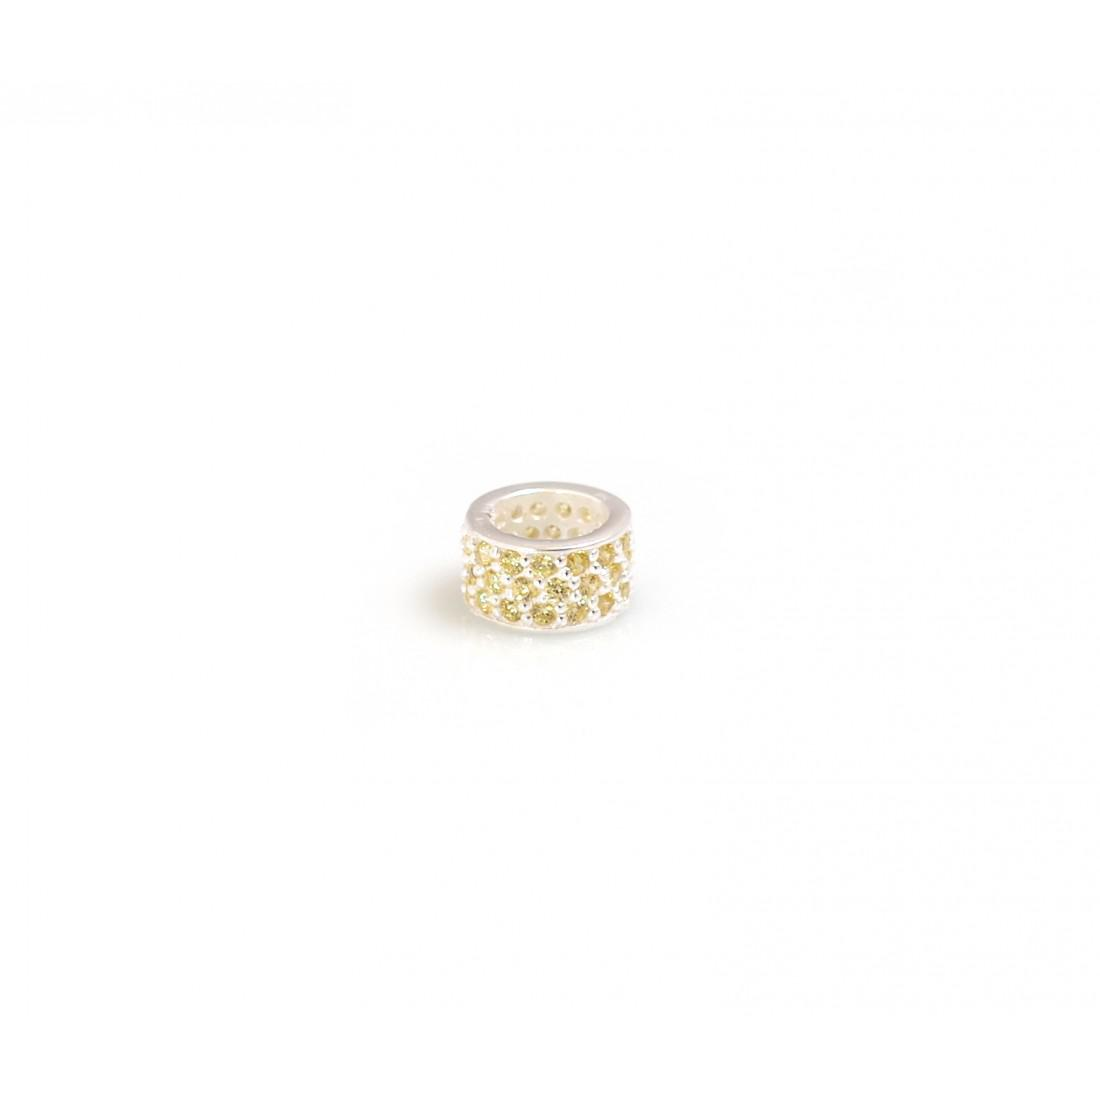 Exclusive Sterling Silver & Primrose Yellow CZ Starlight Roller Charm Bead